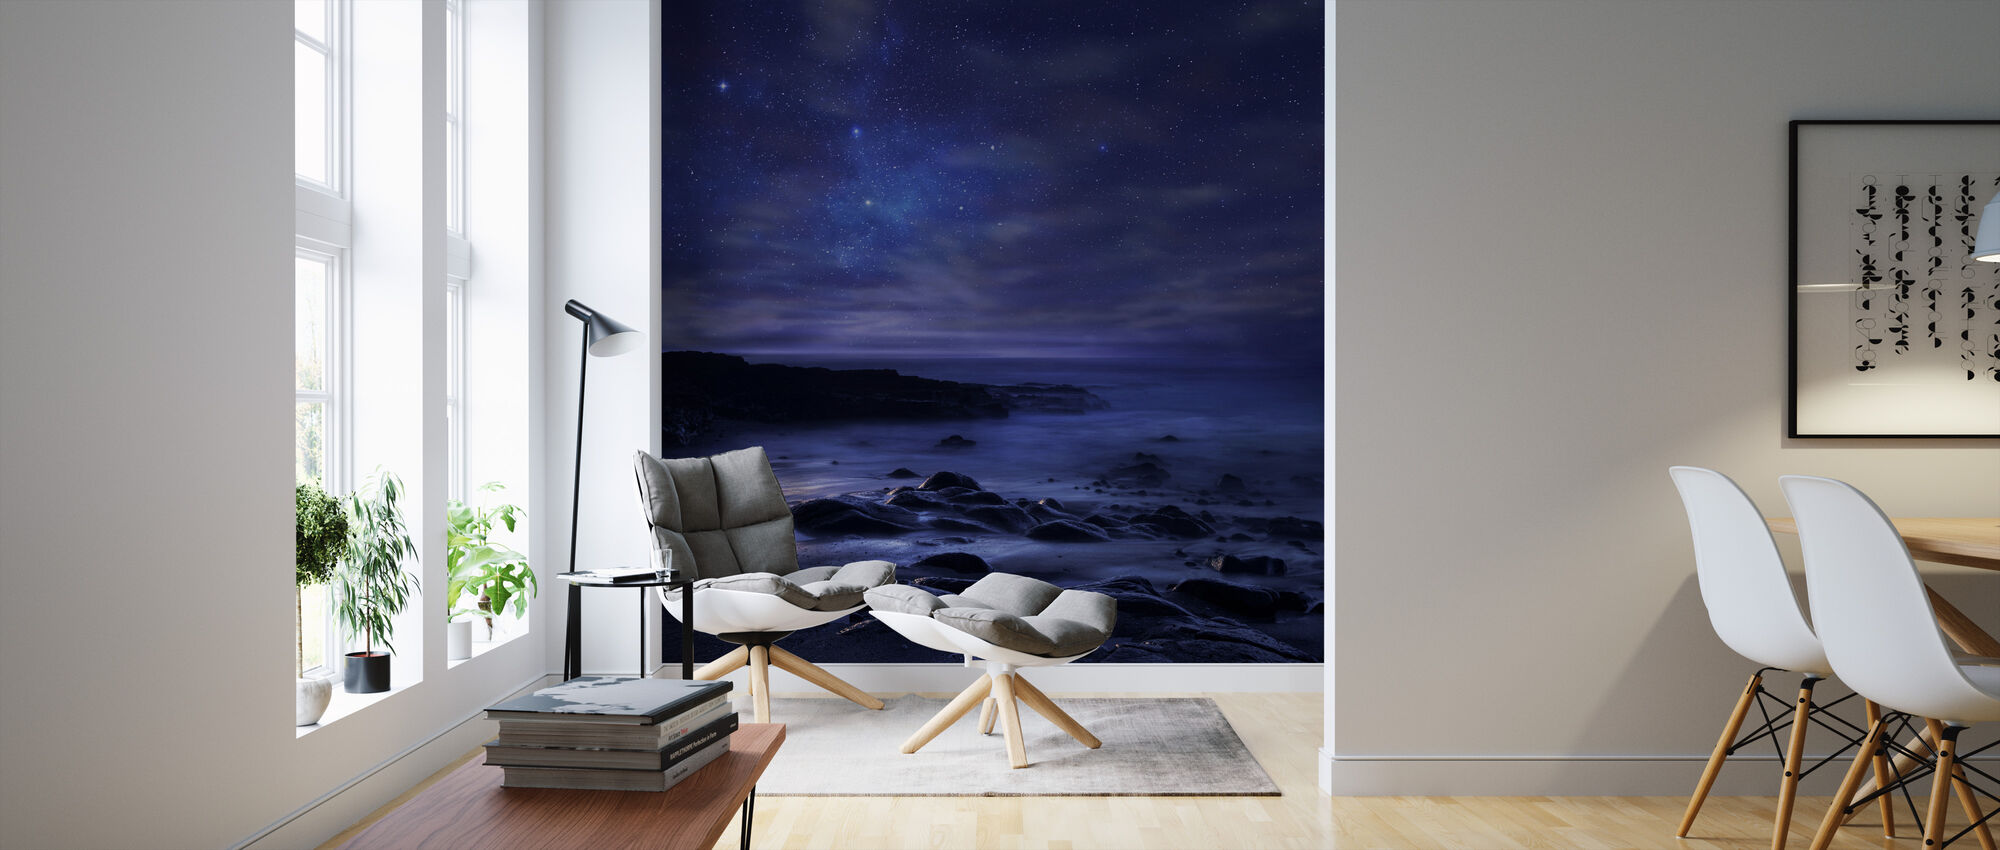 Purple Sky - Wallpaper - Living Room